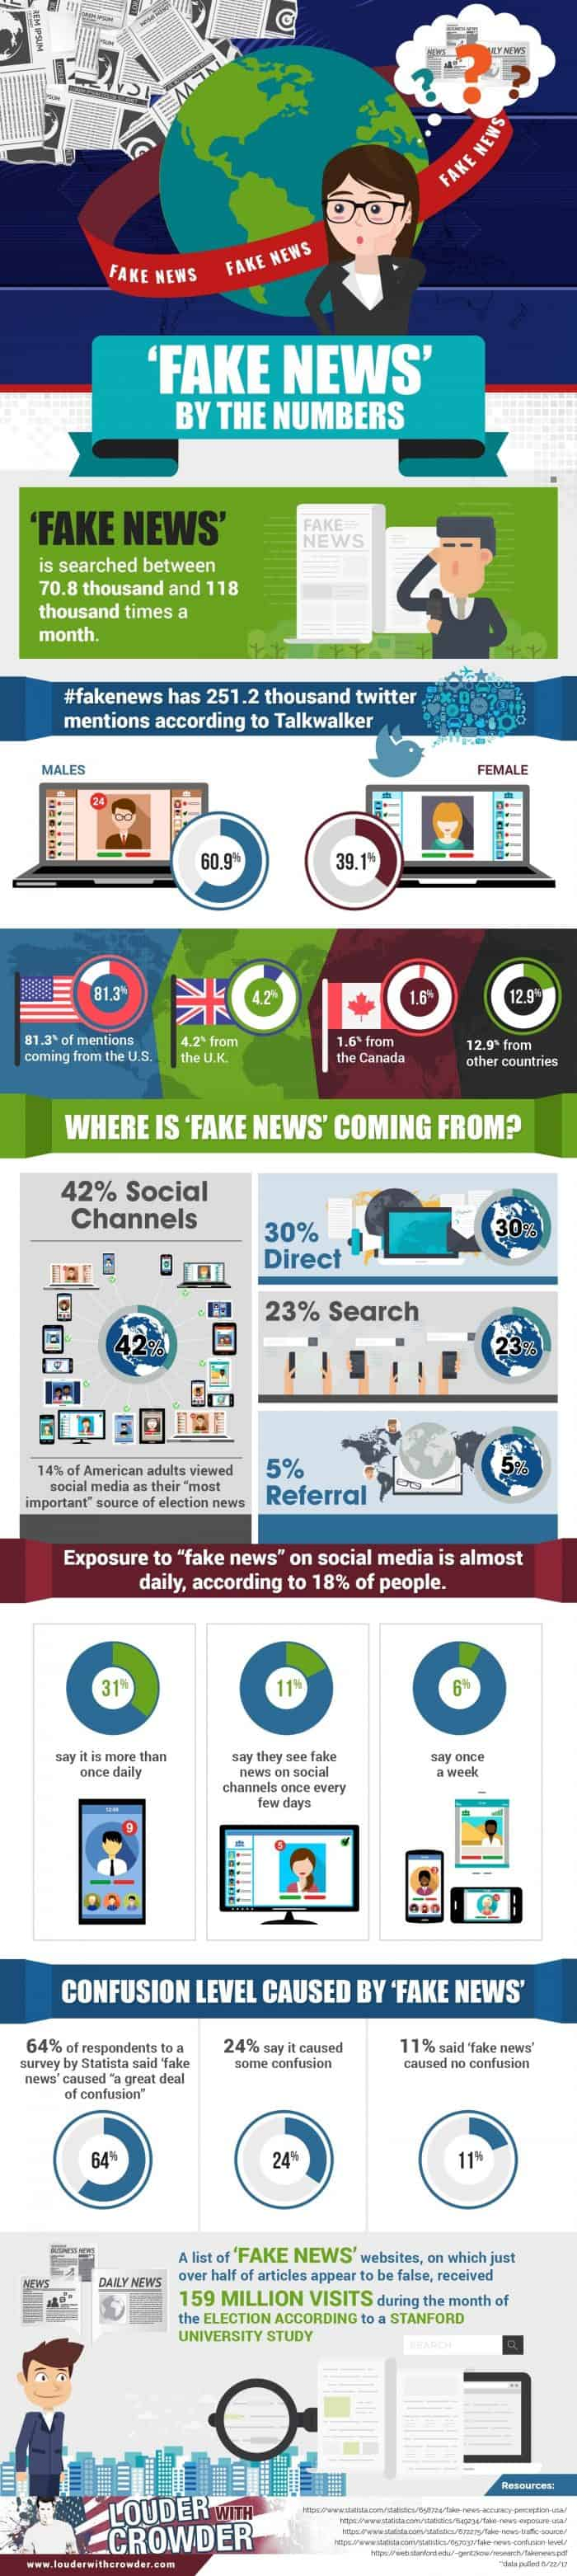 """""""Fake News"""" by the Numbers"""